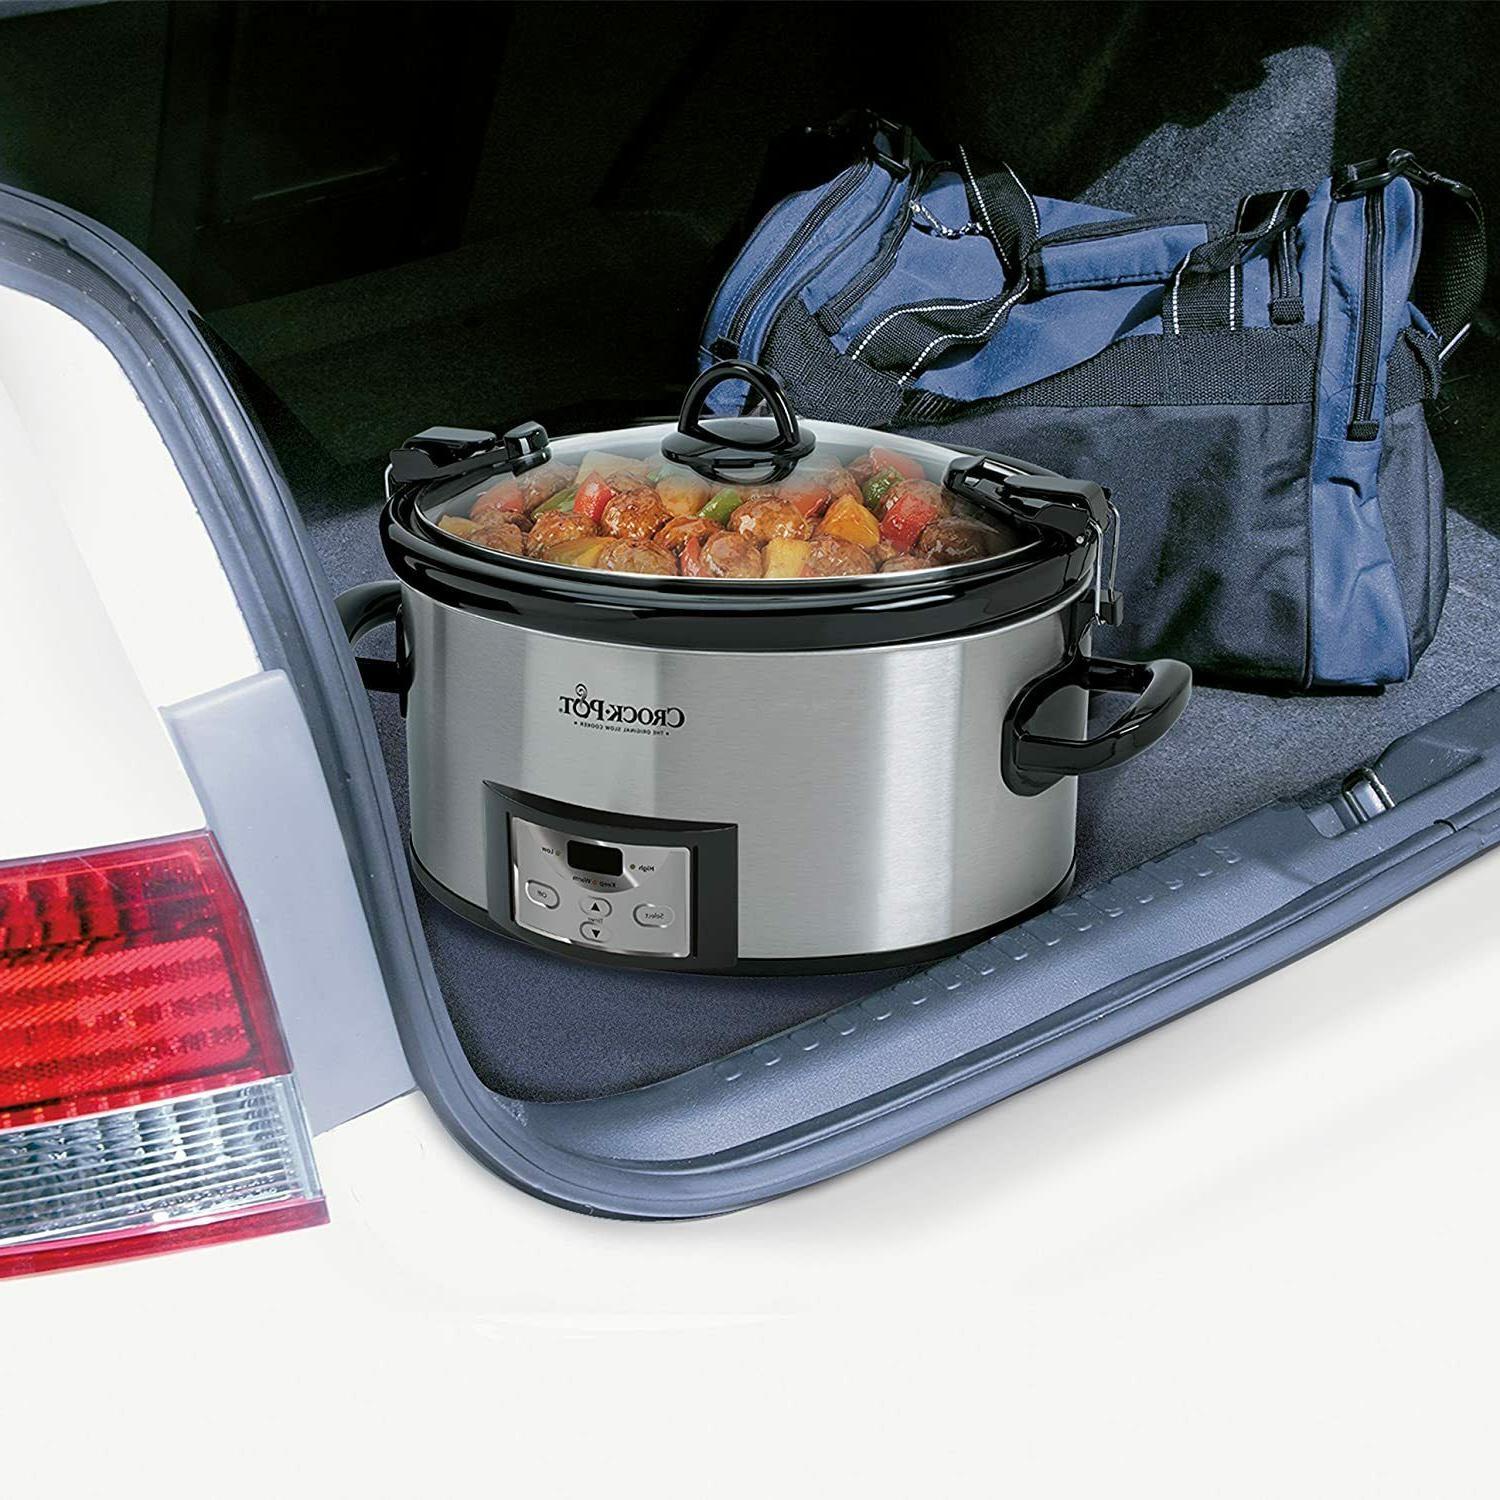 SCCPVL610-S-A Cook Carry Programmable Slow Cooker with Timer